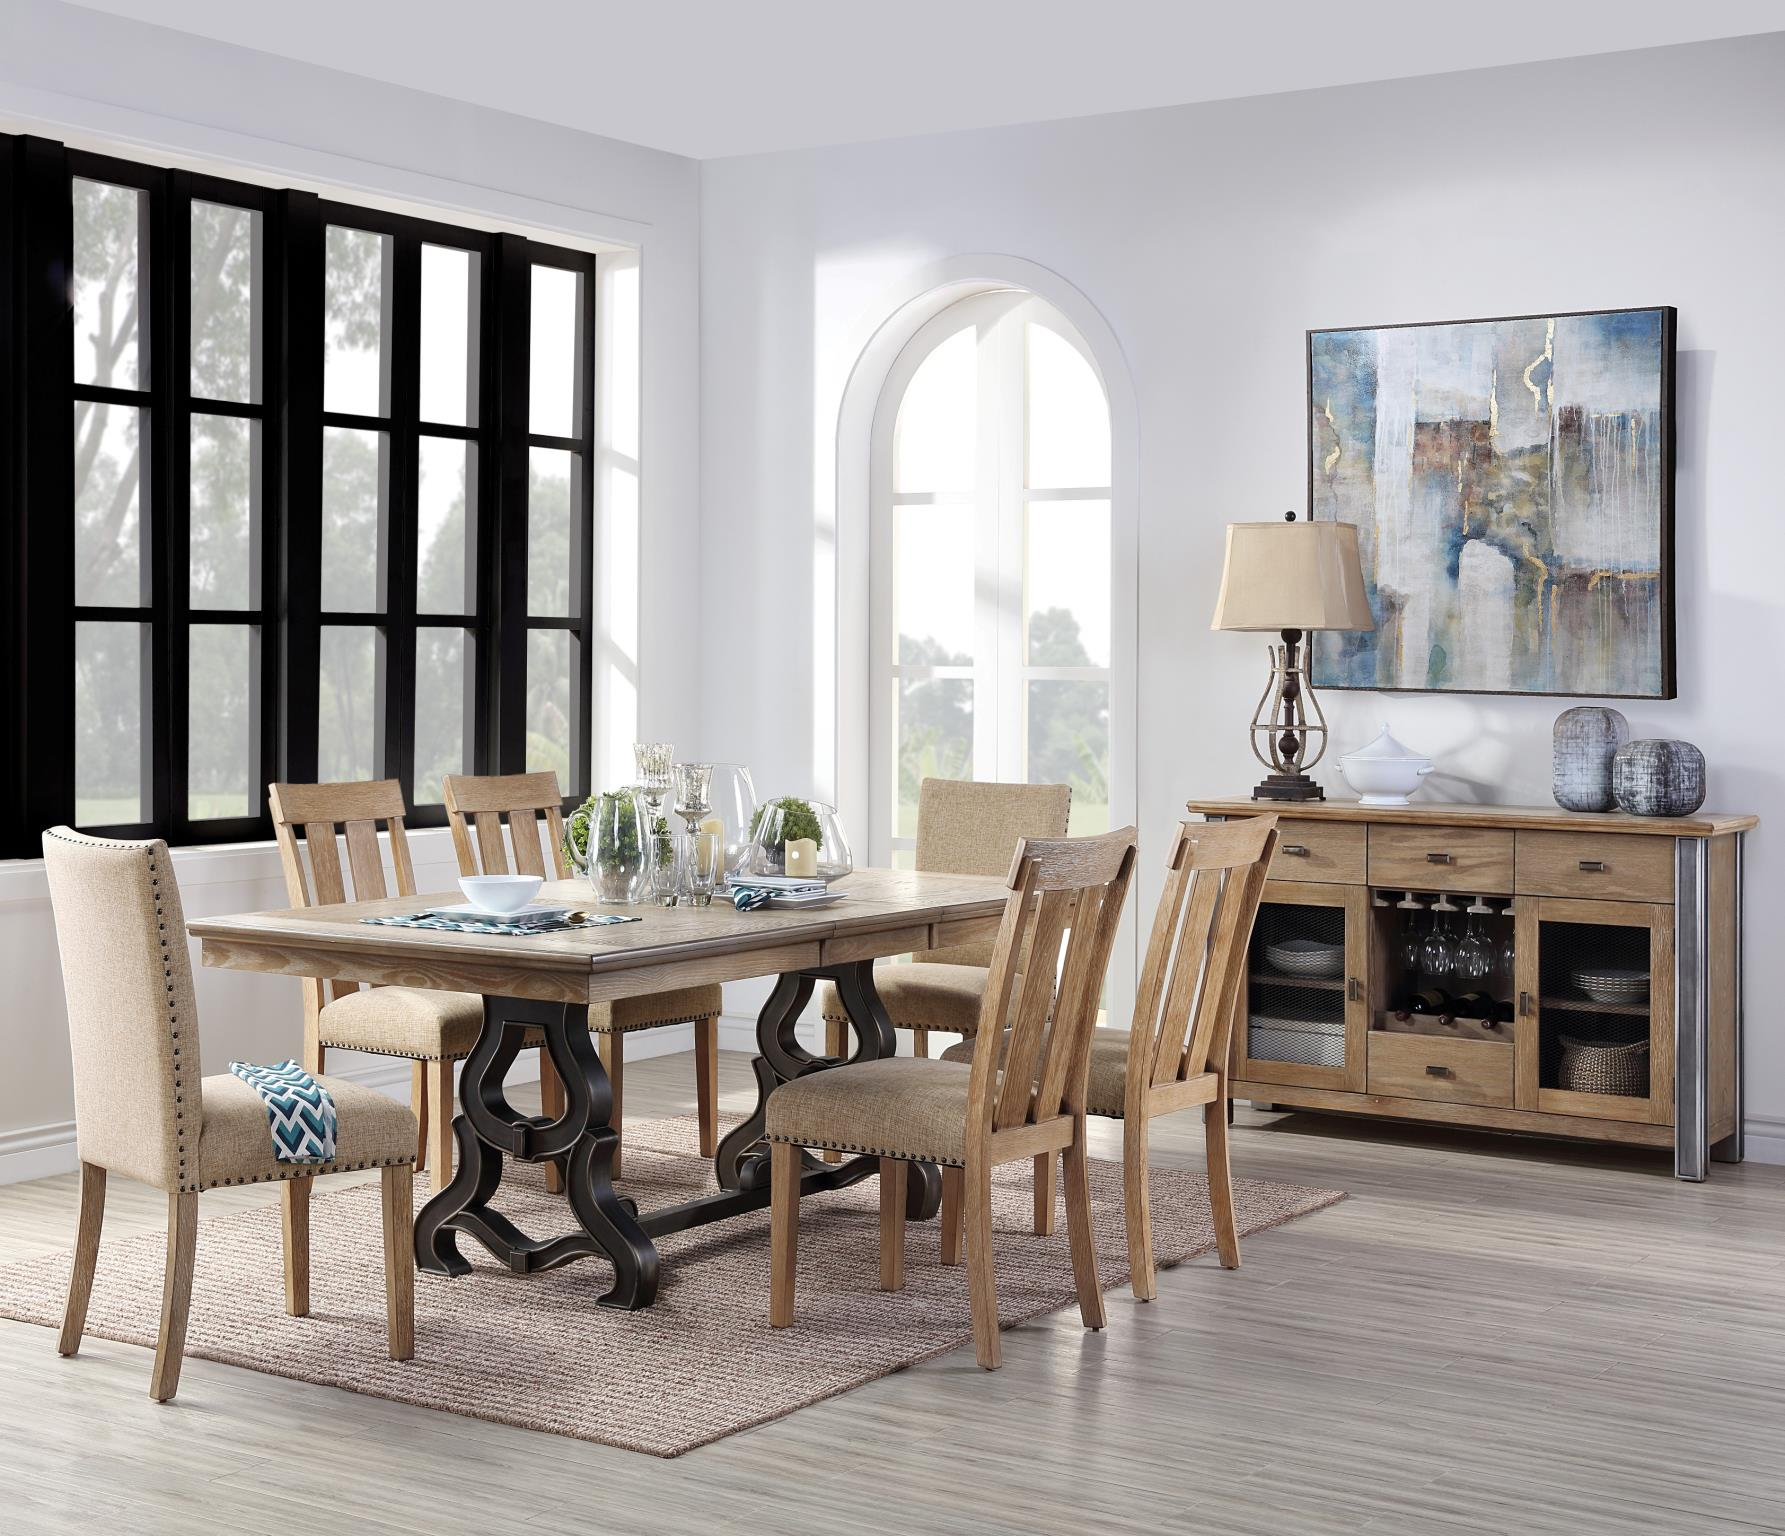 Complete Dining Table Set w/ Padded Back and Slatted Back Side Chairs